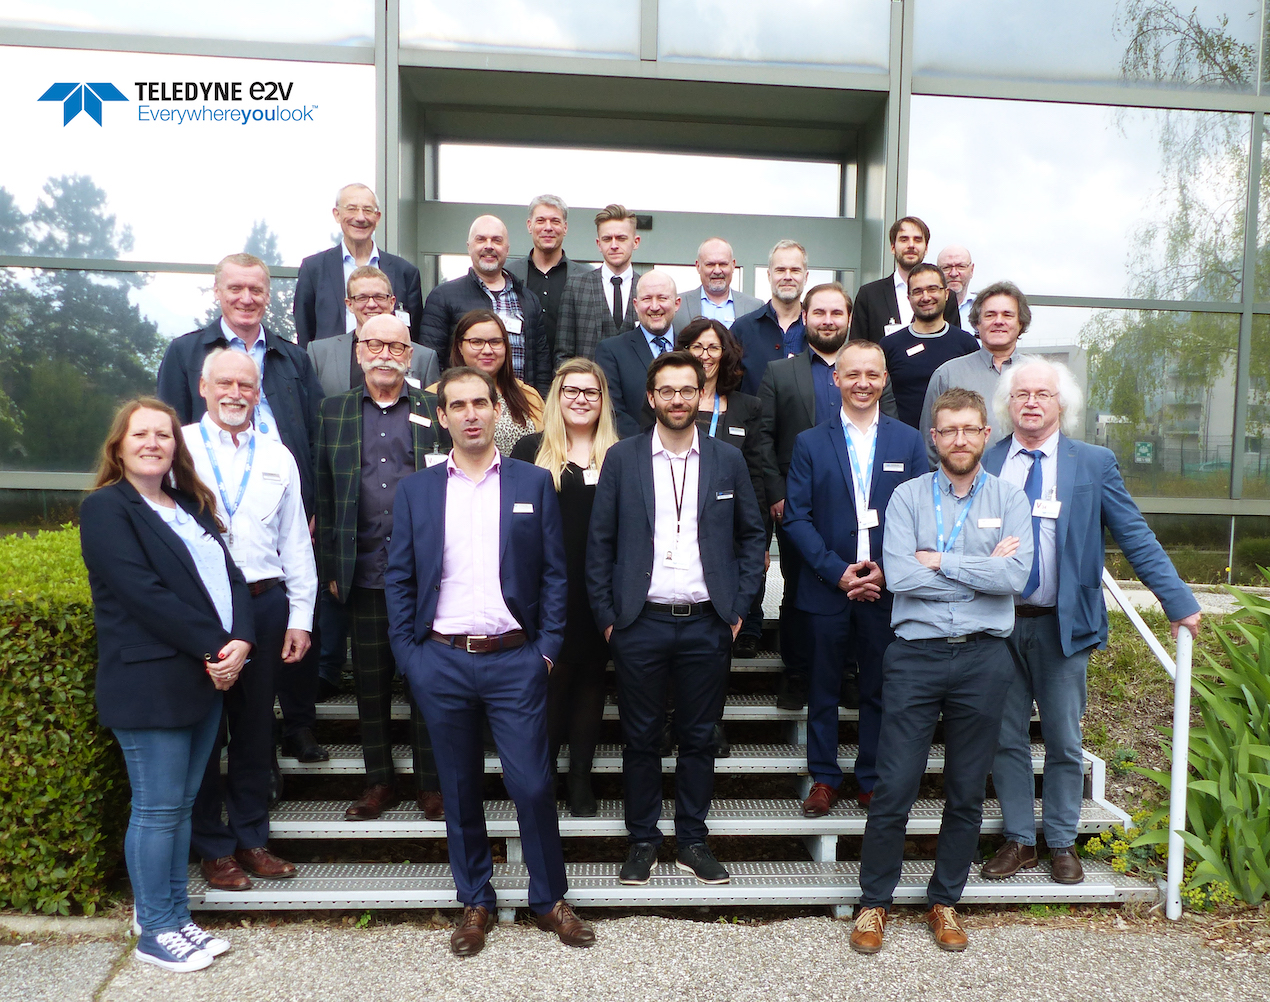 Teledyne e2v Interstellar Press Conference 2019/04 Group Picture